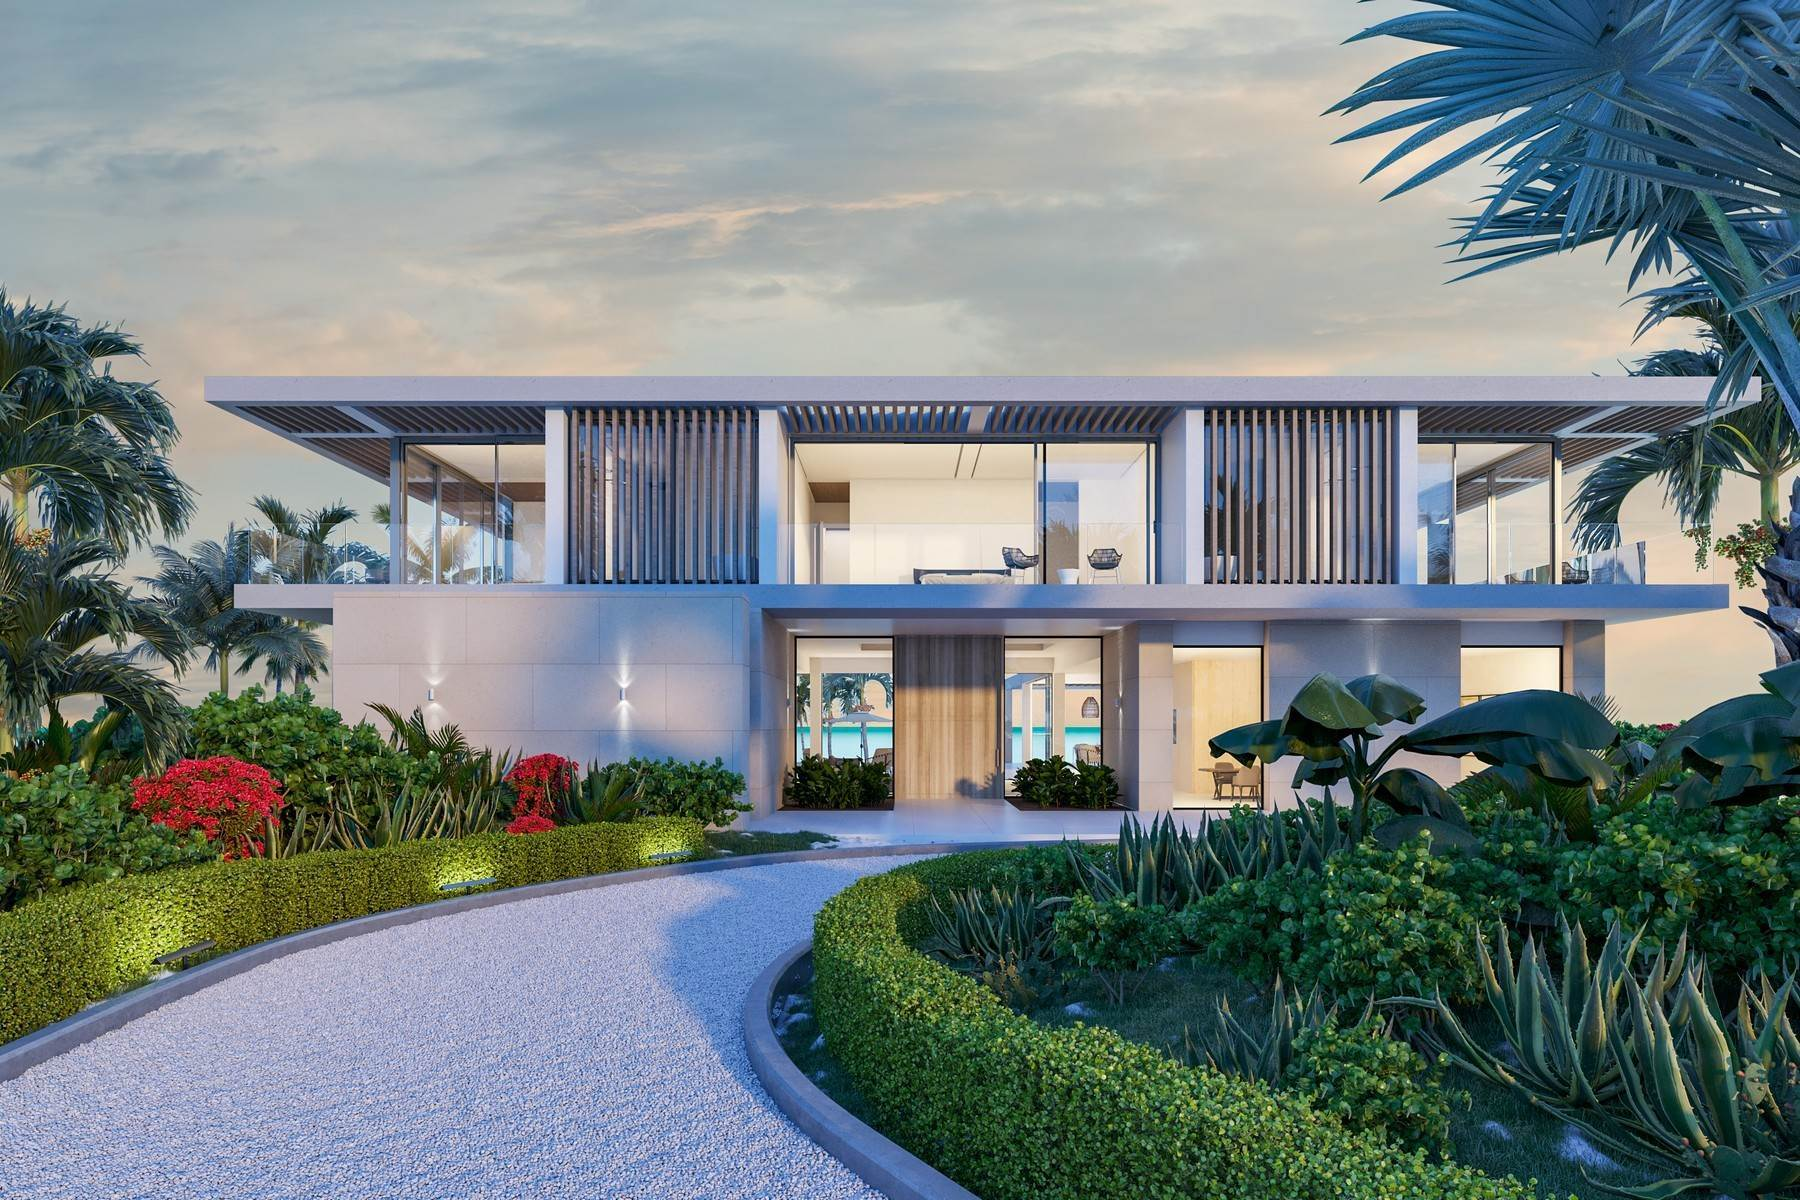 Single Family Homes for Sale at The Peninsula at Emerald Estate - Beach House 2 Emerald Point Beachfront Leeward, Providenciales TKCA 1ZZ Turks And Caicos Islands